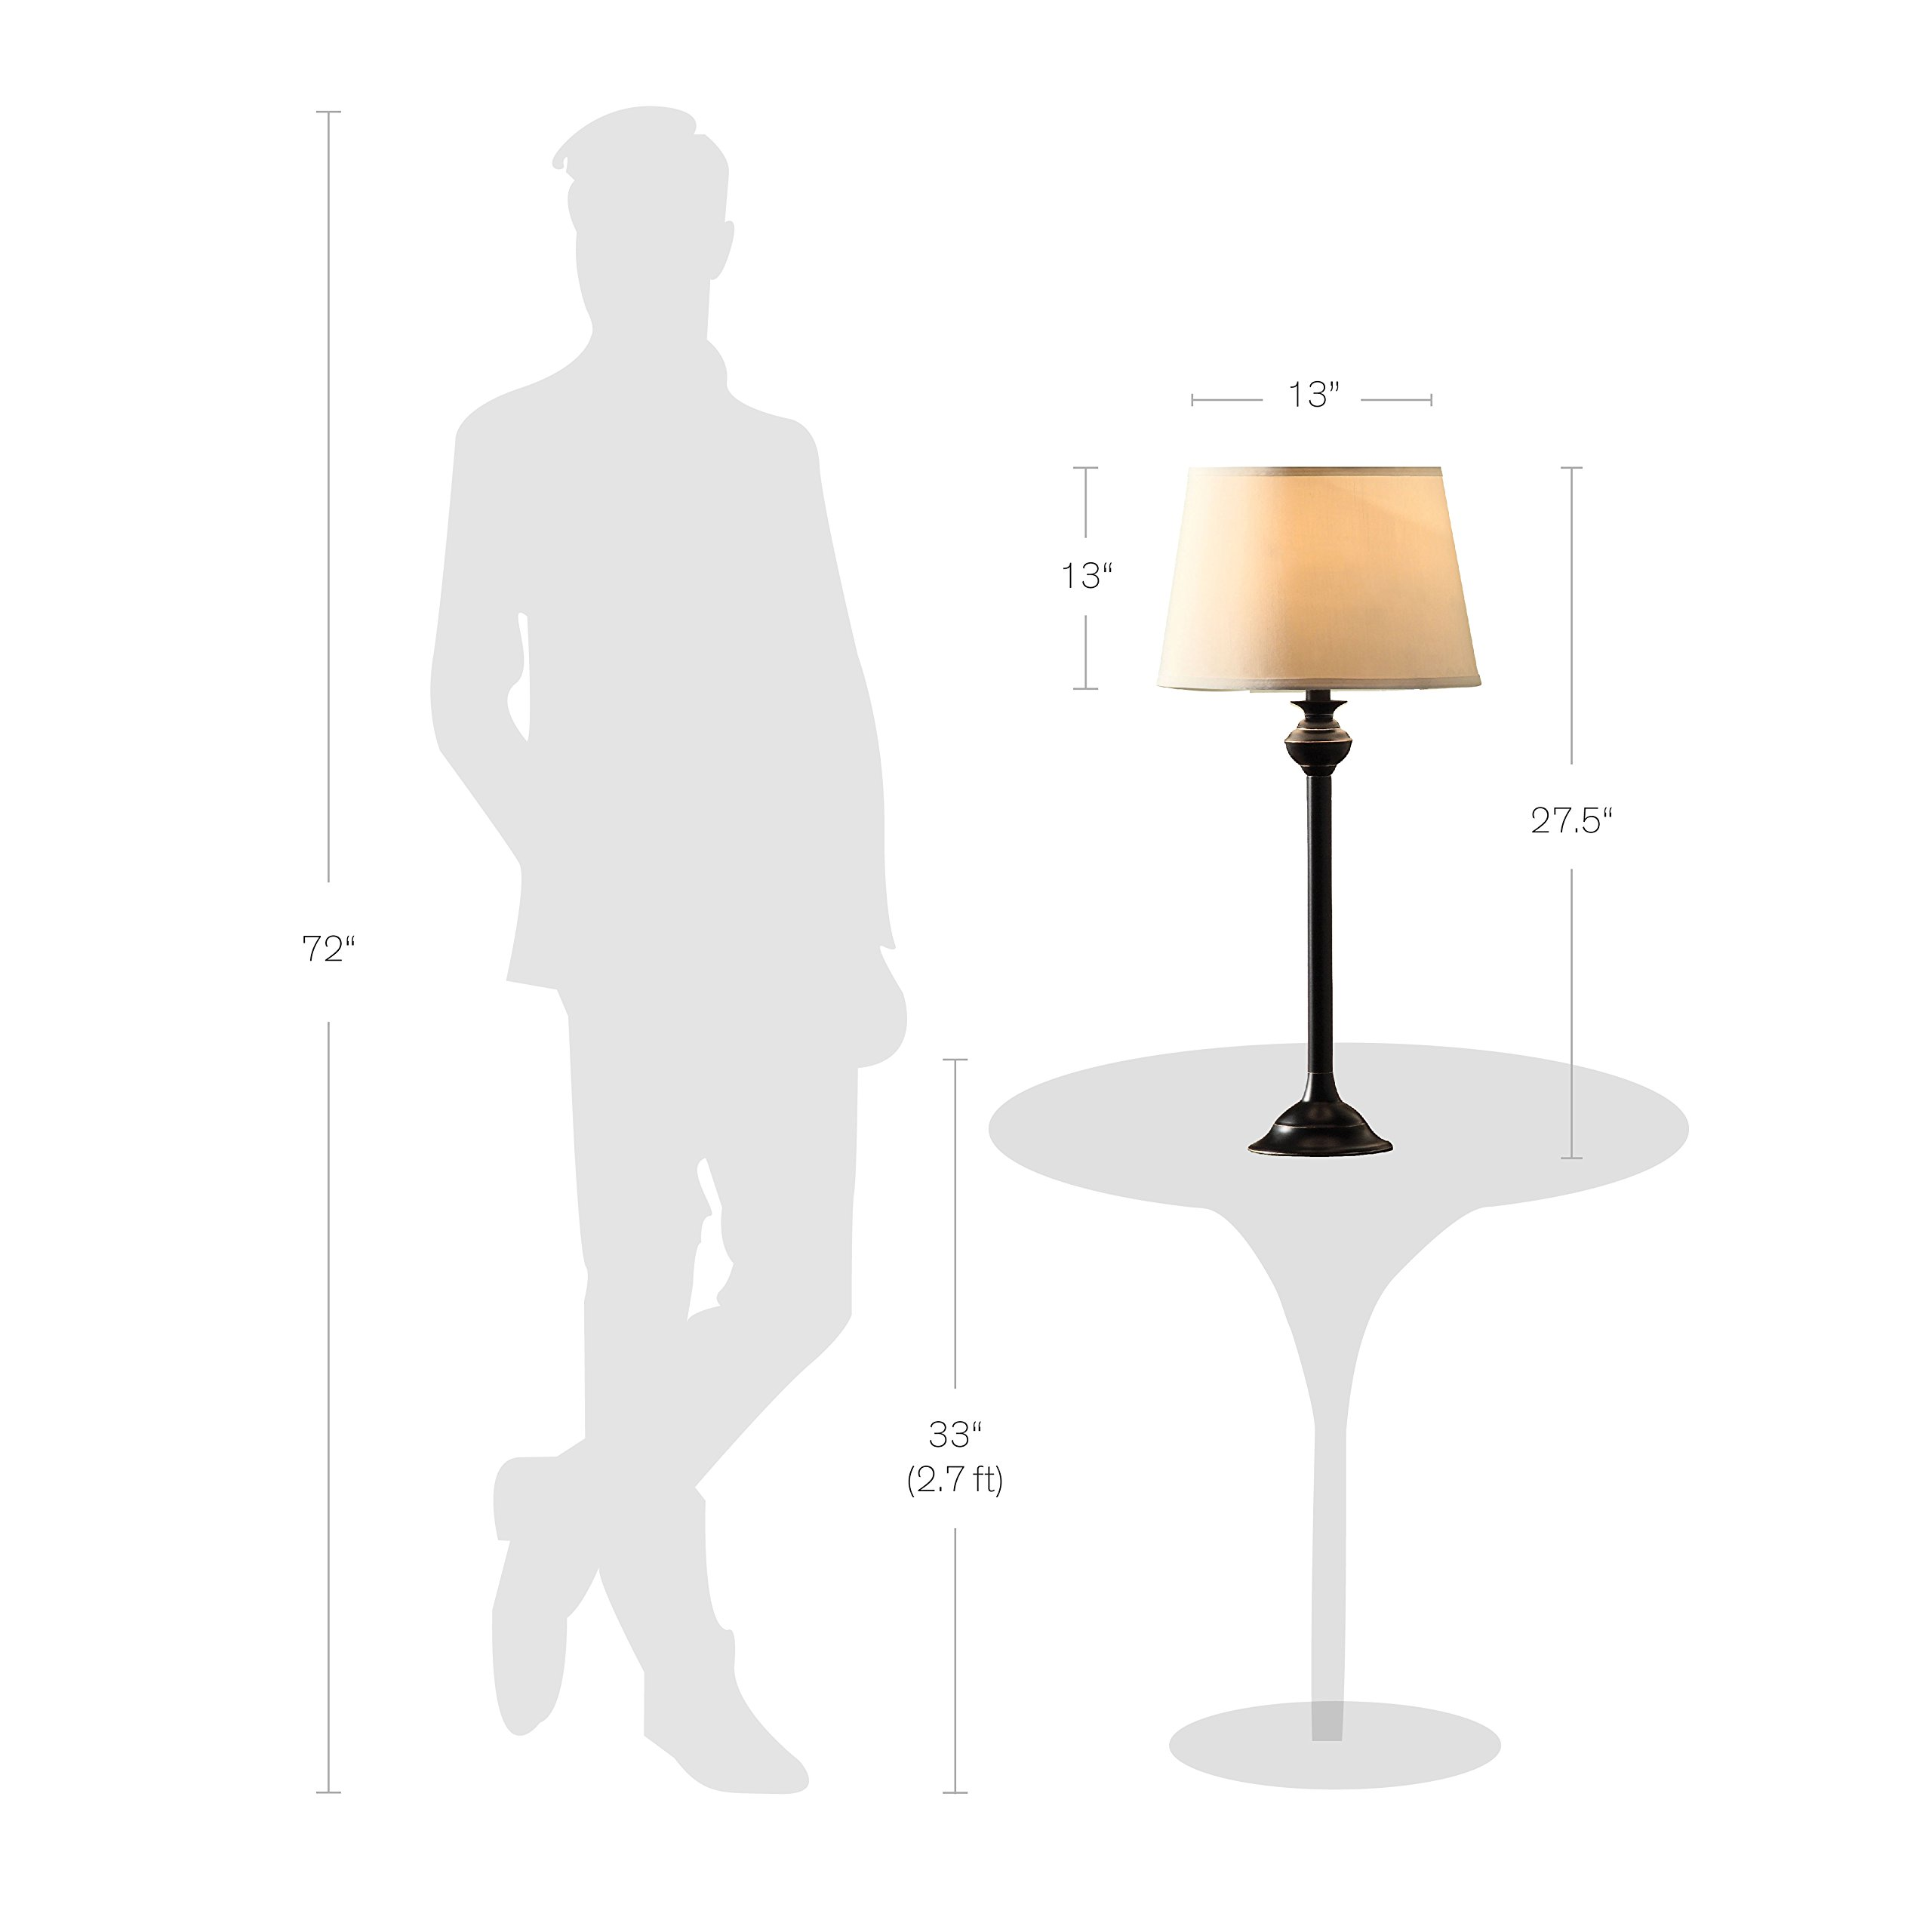 Catalina Lighting 18079-001 Traditional 3-Piece Metal Floor & Table Lamp Set with Linen Shades, Without Bulb, Black Classic by Catalina Lighting (Image #6)